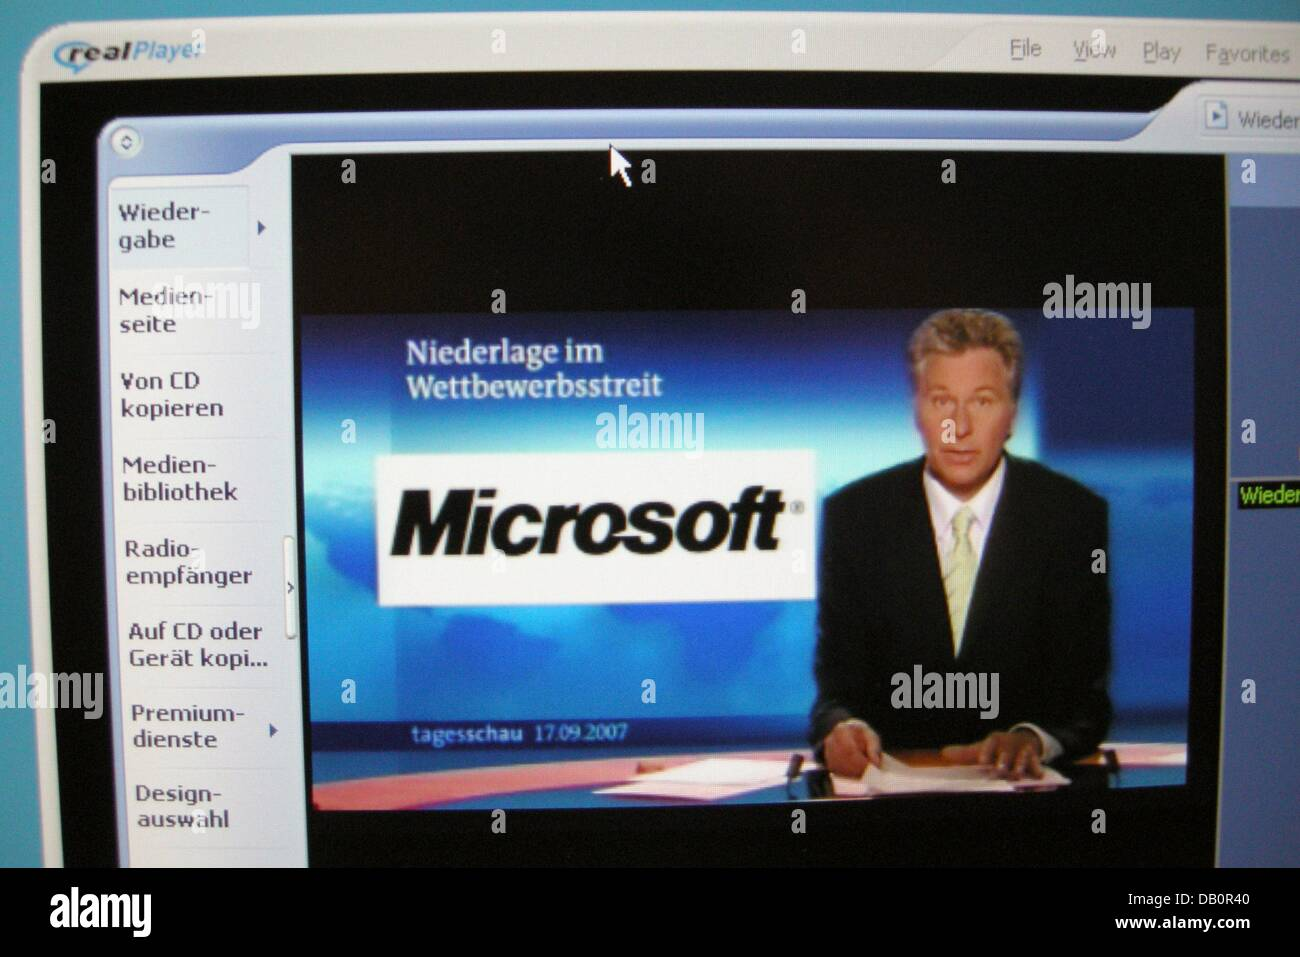 The picture dated 17 September 2007 shows a screenshot of 'realPlayer' showing 'Windows Media Player' - Stock Image